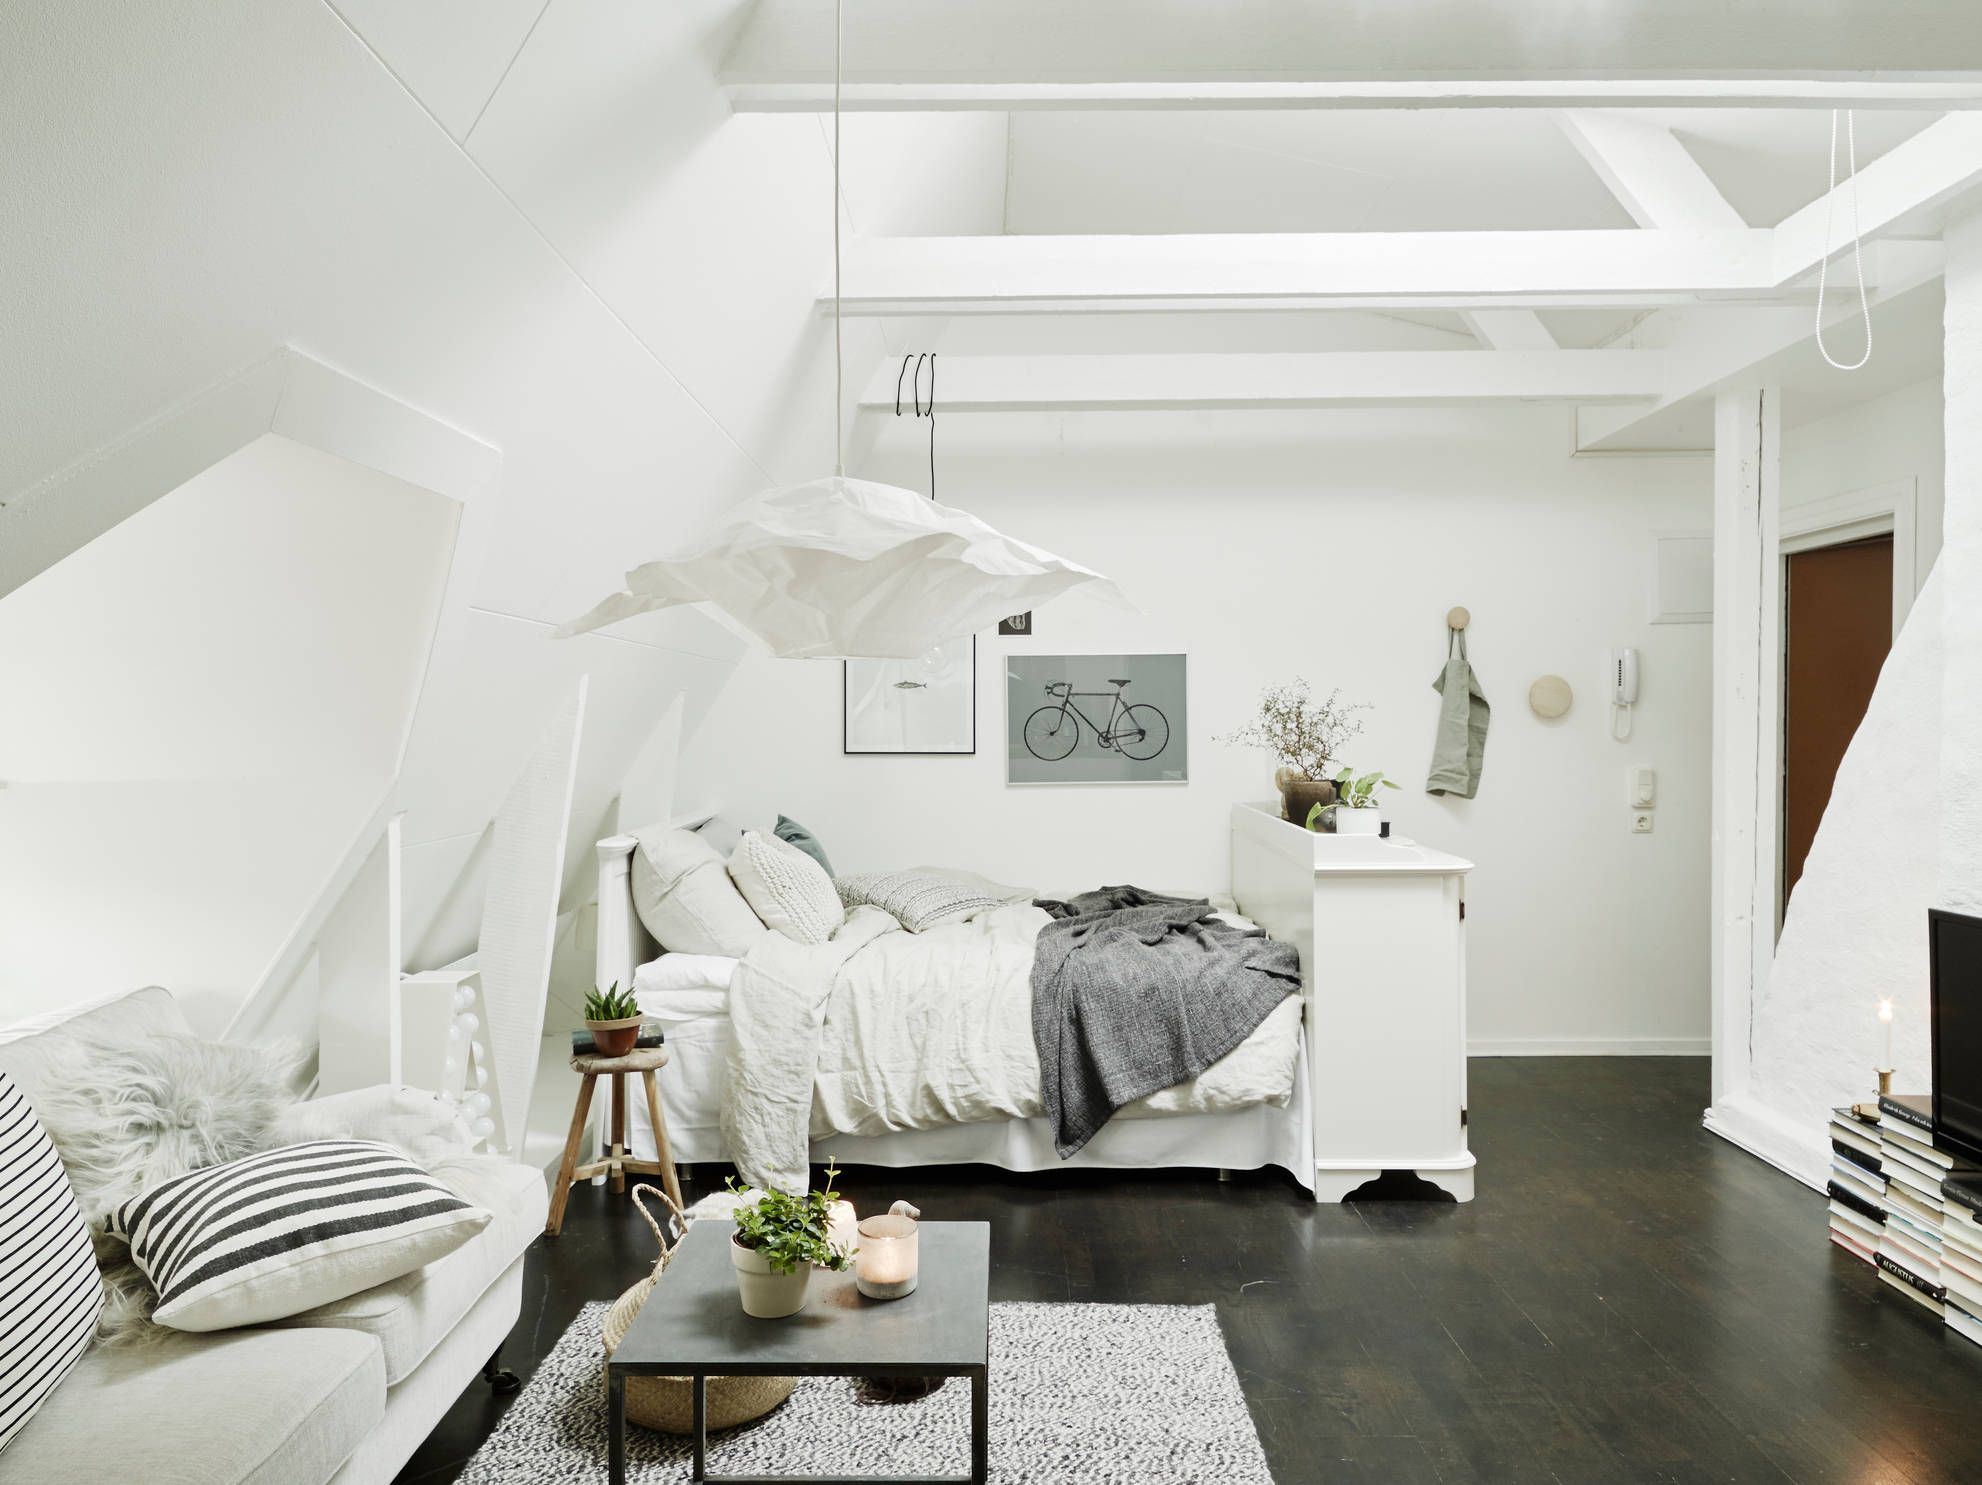 All In One Apartment Full Of Sophistication And Knockout Appeal Bedroom Interior Attic Apartment Attic Rooms